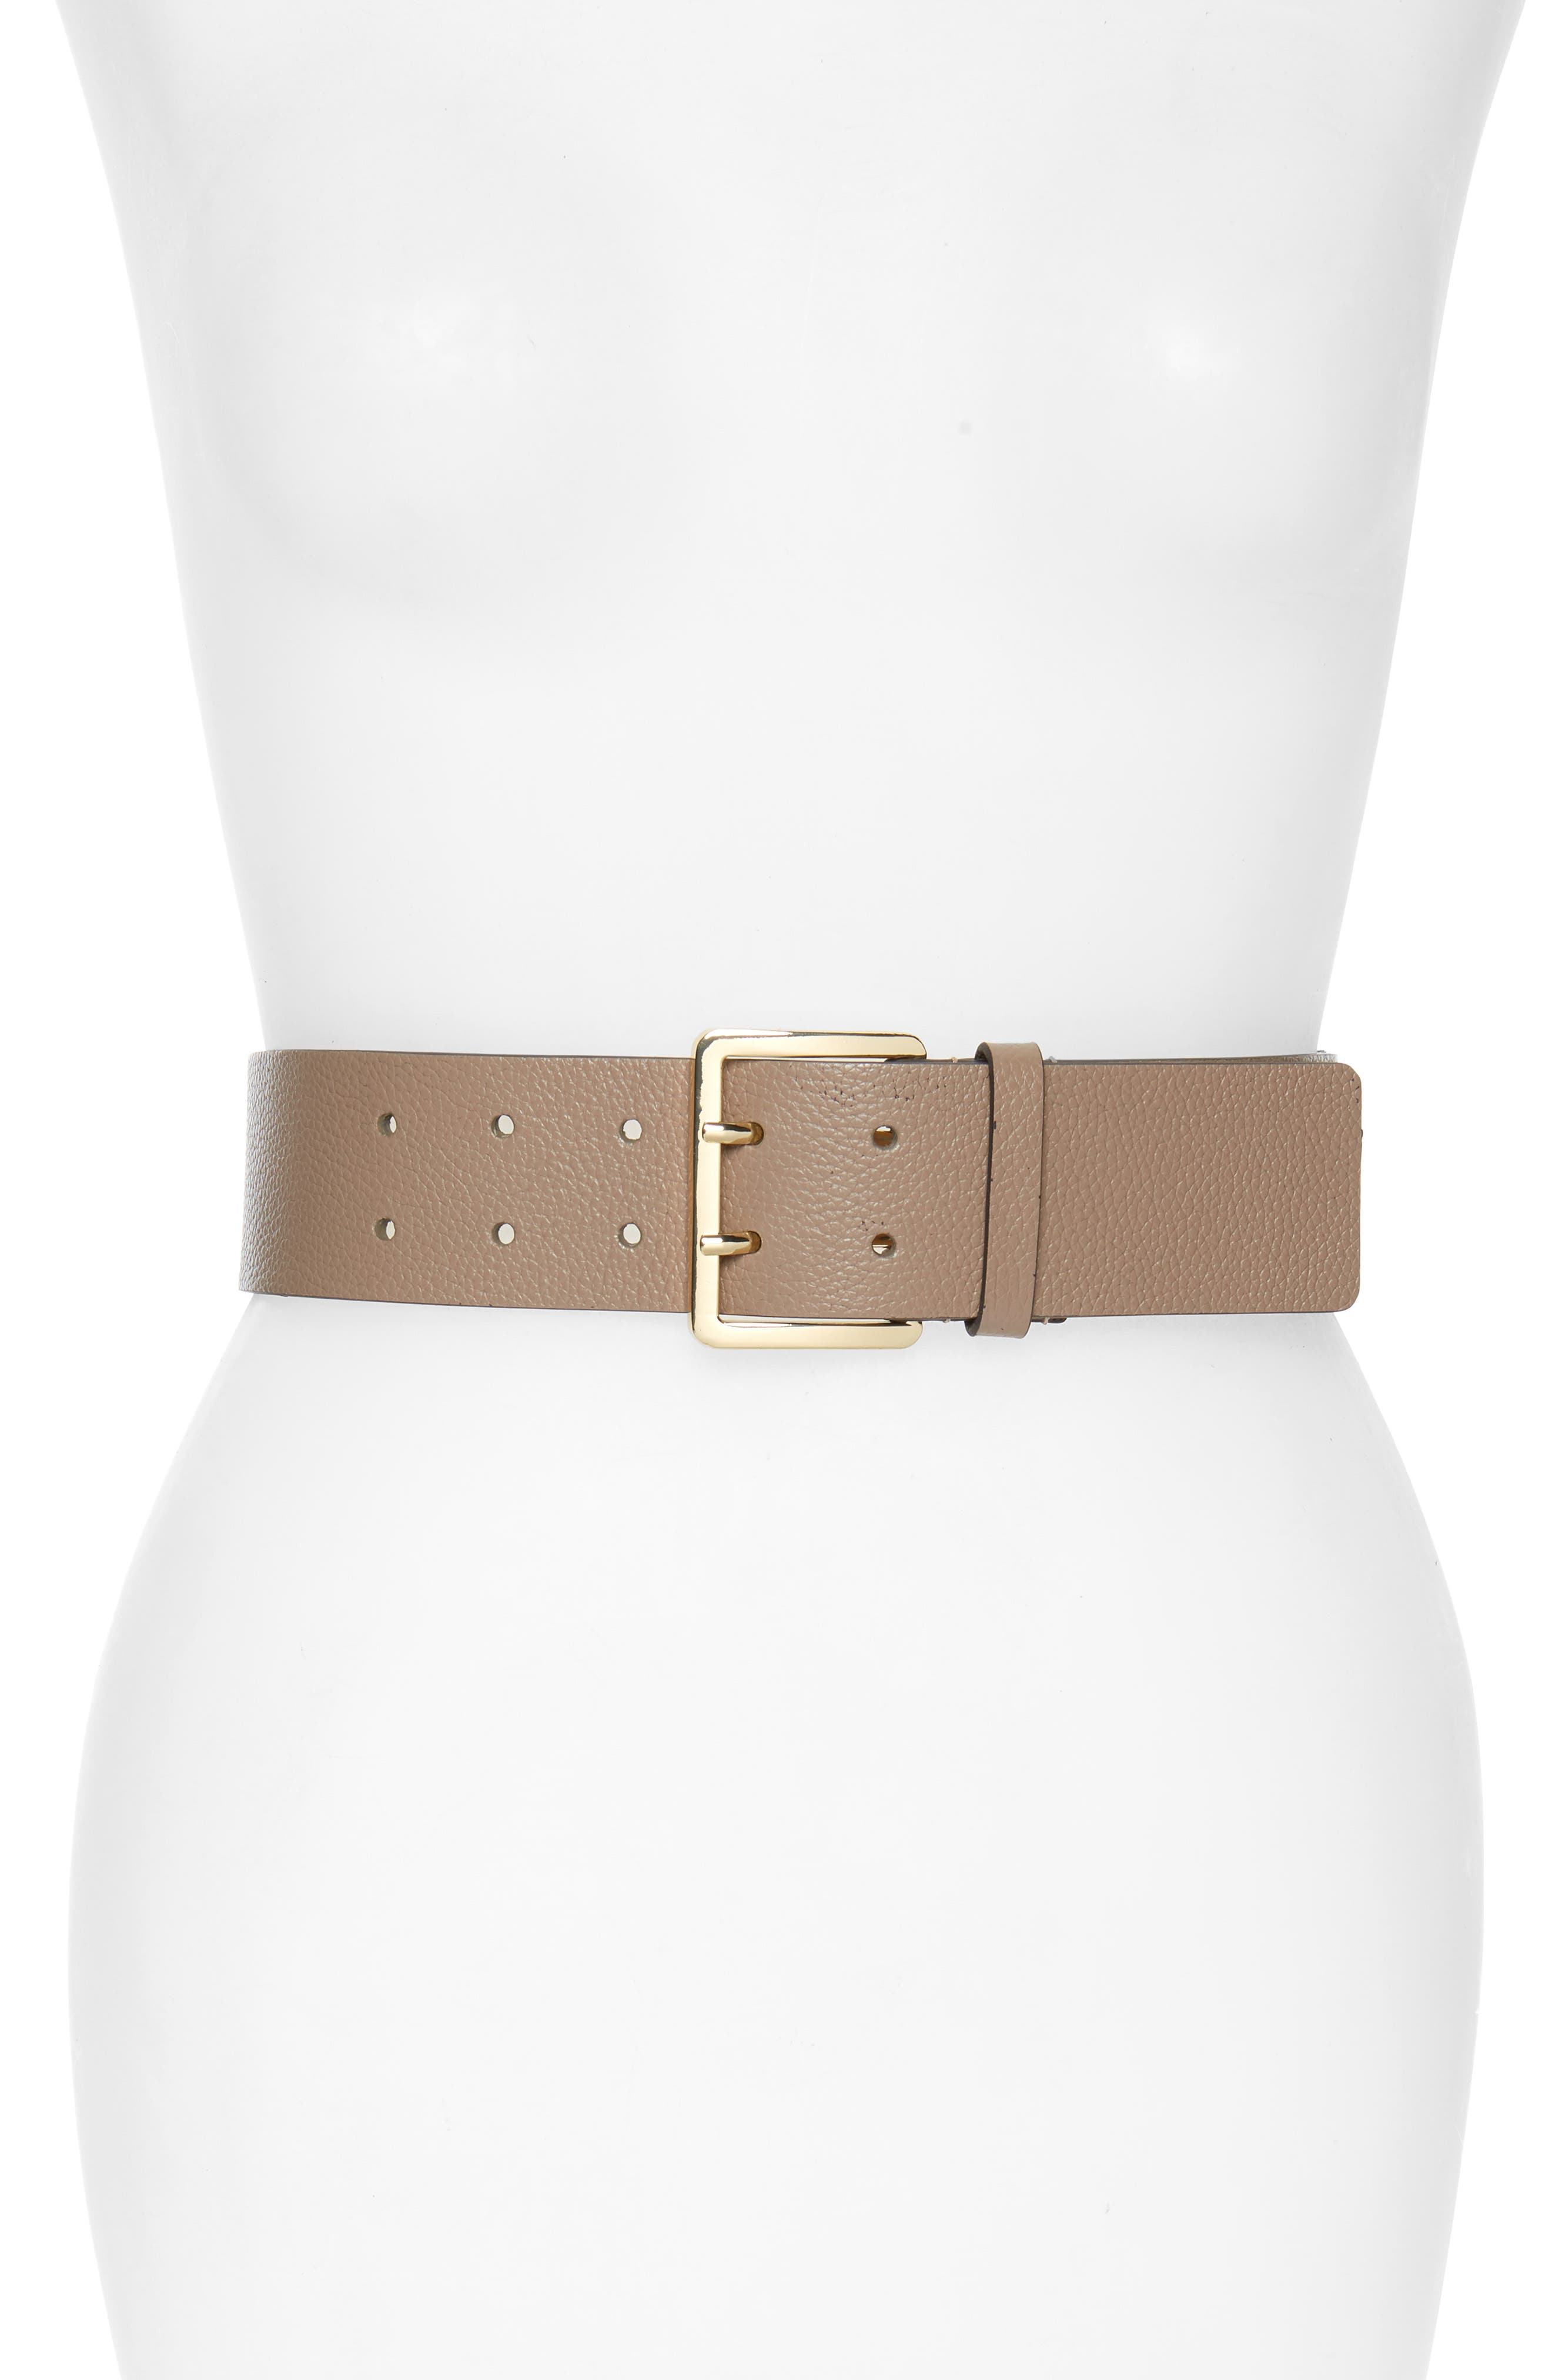 MICHAEL MICHAEL KORS,                             Suede Fringe Leather Belt,                             Main thumbnail 1, color,                             TRUFFLE/ LIGHT POL GOLD